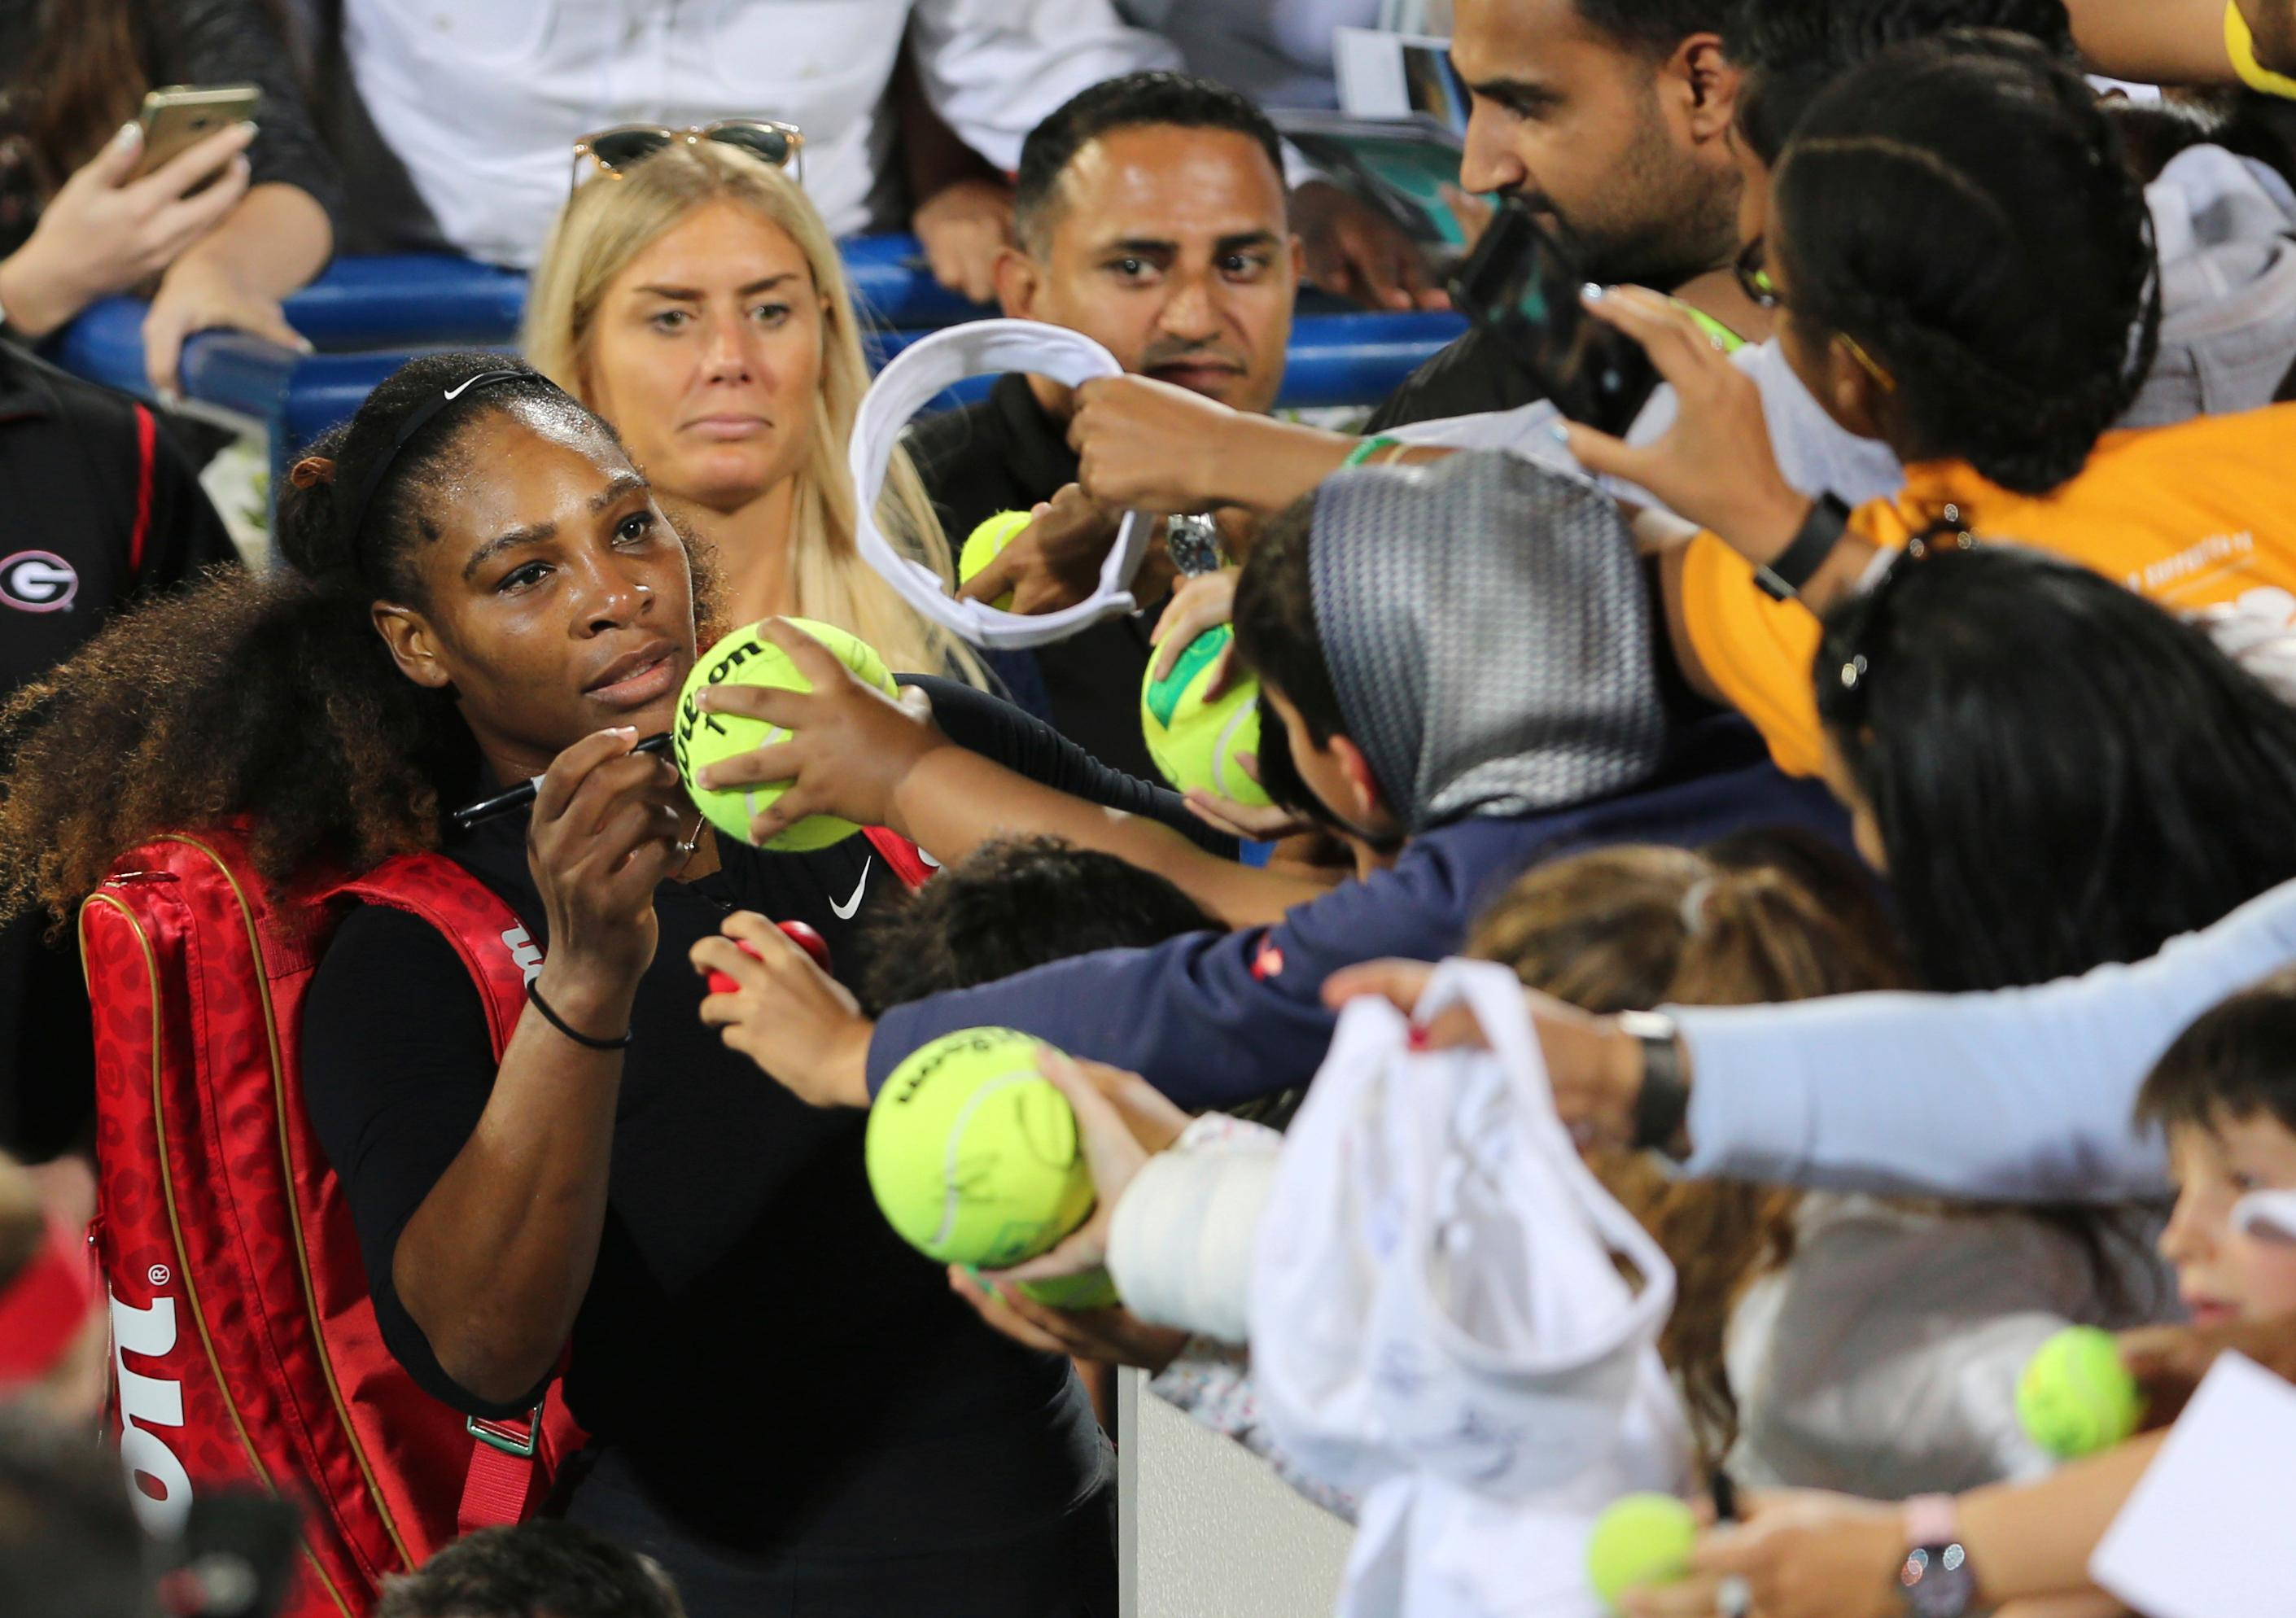 Serena Williams from the U.S. signs autographs after an exhibition match against Jelena Ostapenko of Latvia during the final day of the Mubadala World Tennis Championship in Abu Dhabi, United Arab Emirates, Saturday, Dec. 30, 2017. (AP Photo/Kamran Jebreili)